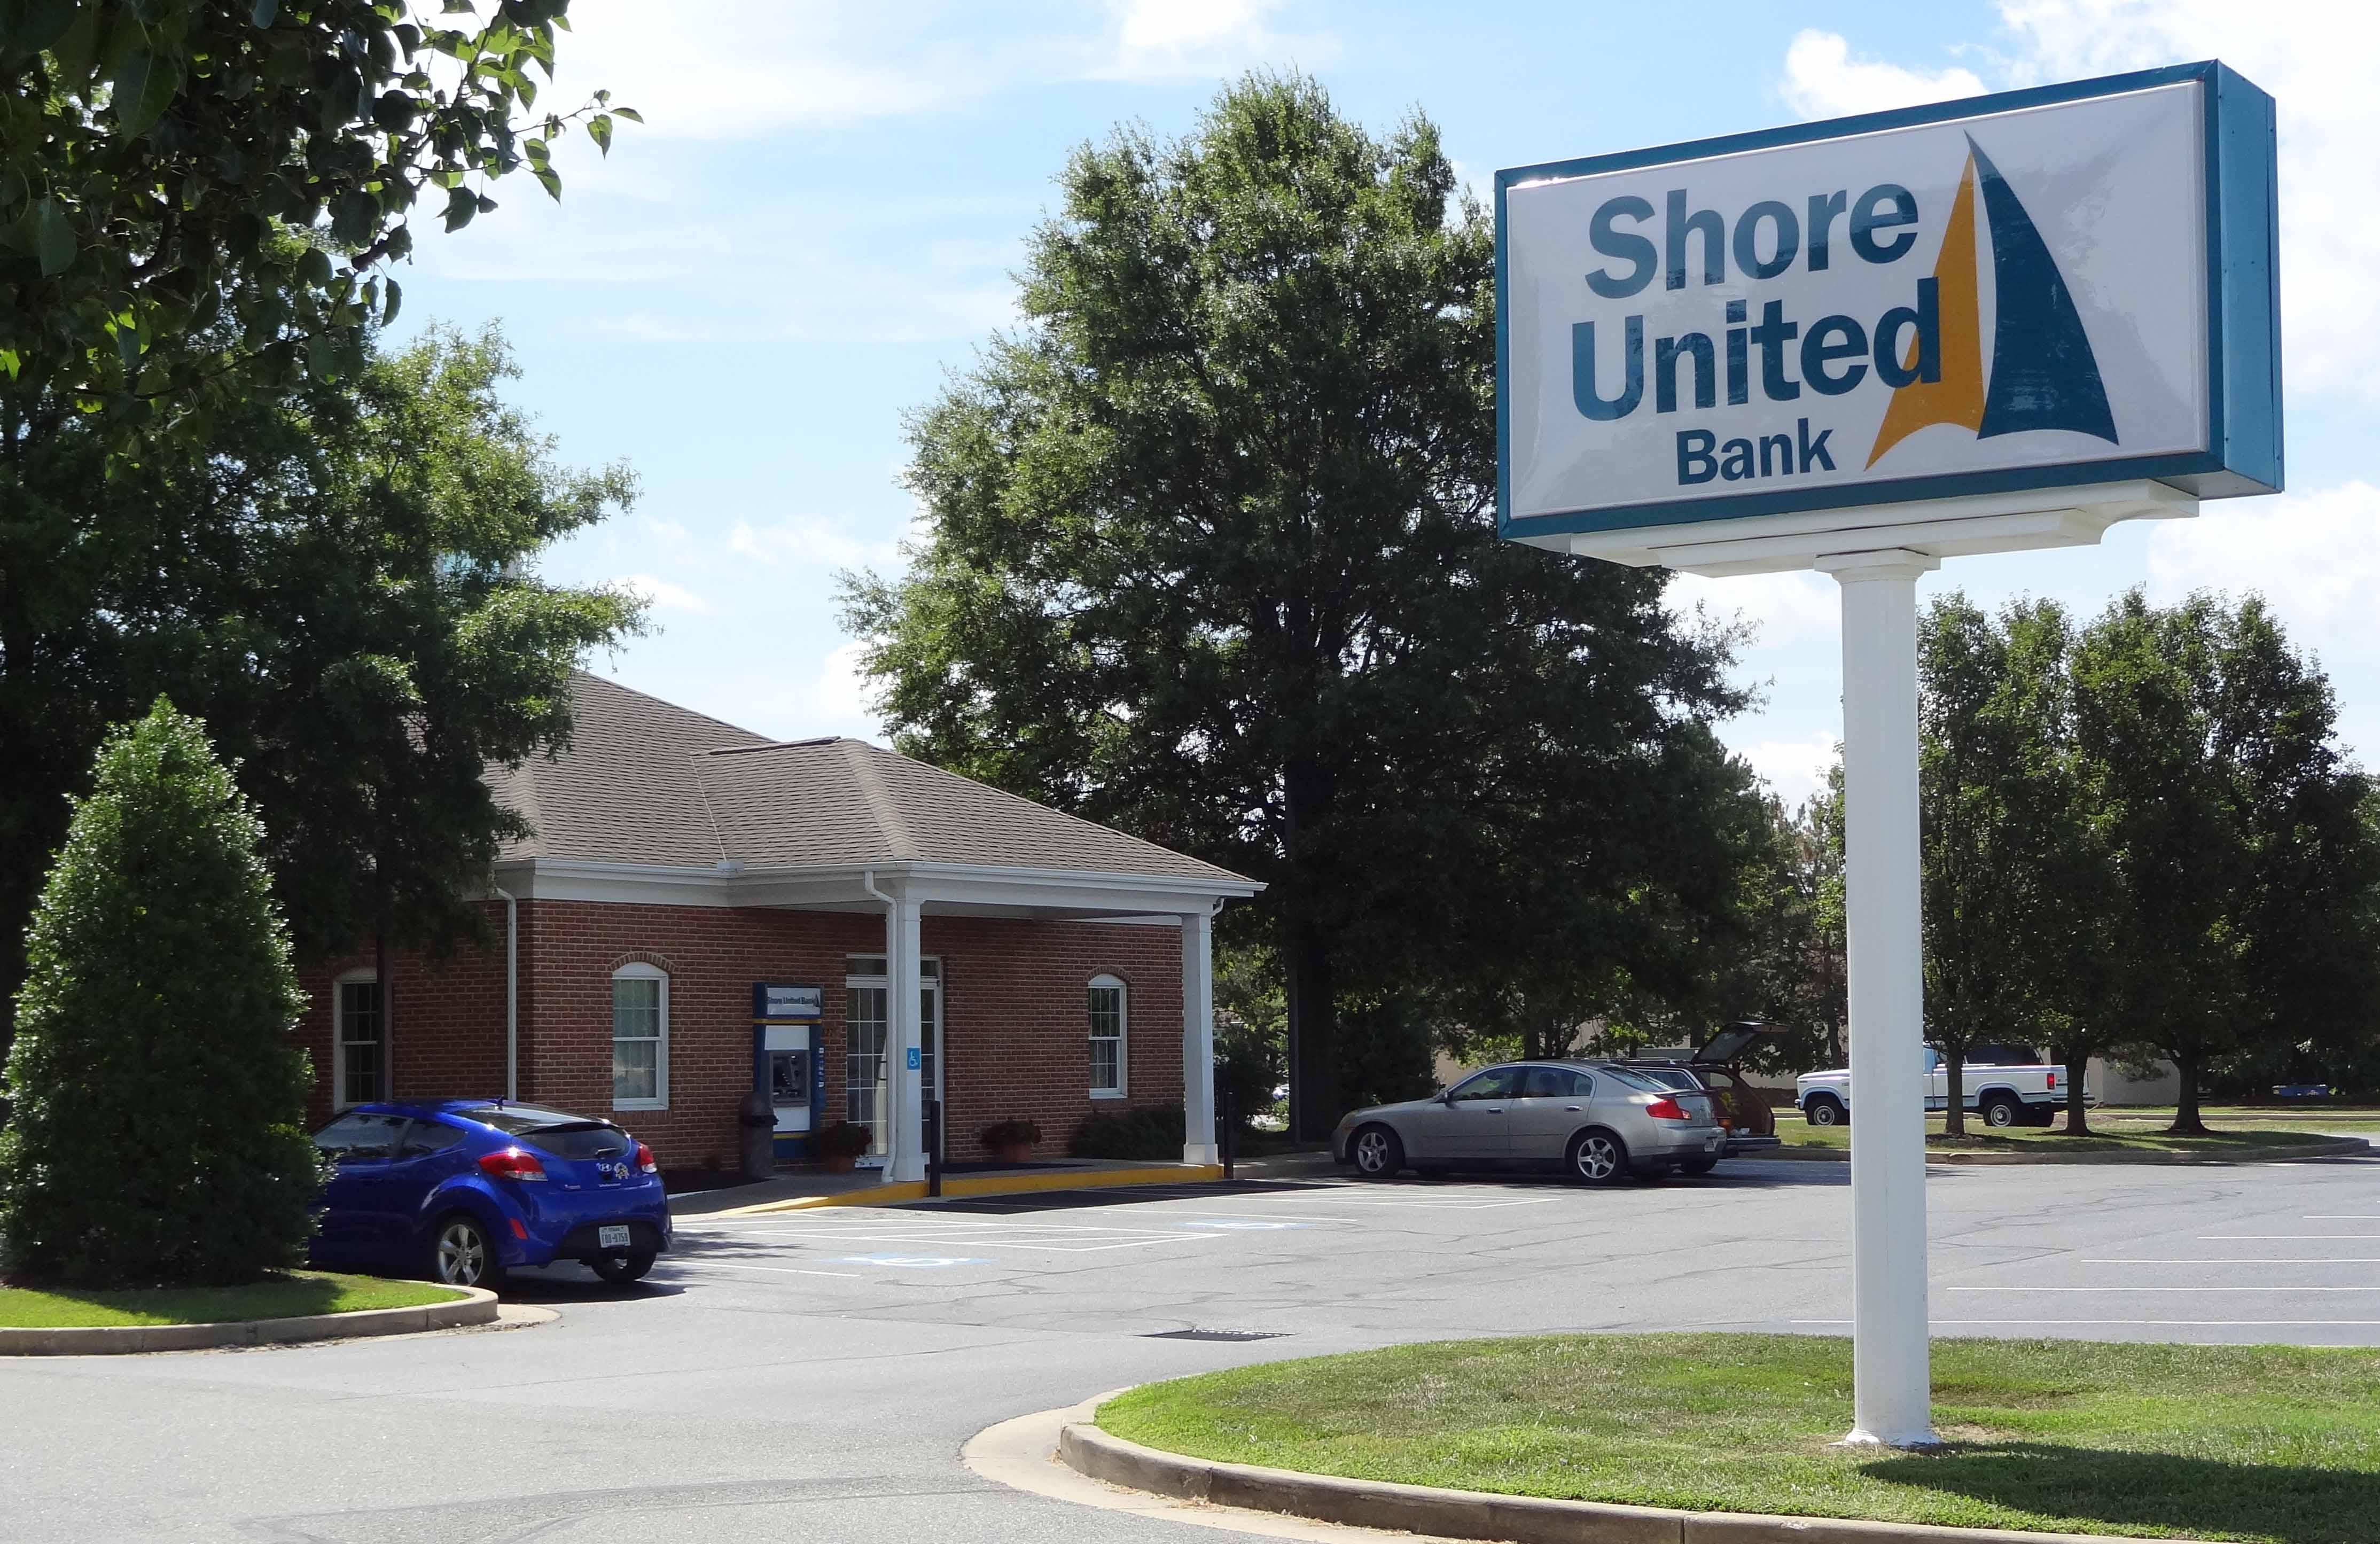 Shore United Bank branch at 8275 Elliott Road in Easton, MD